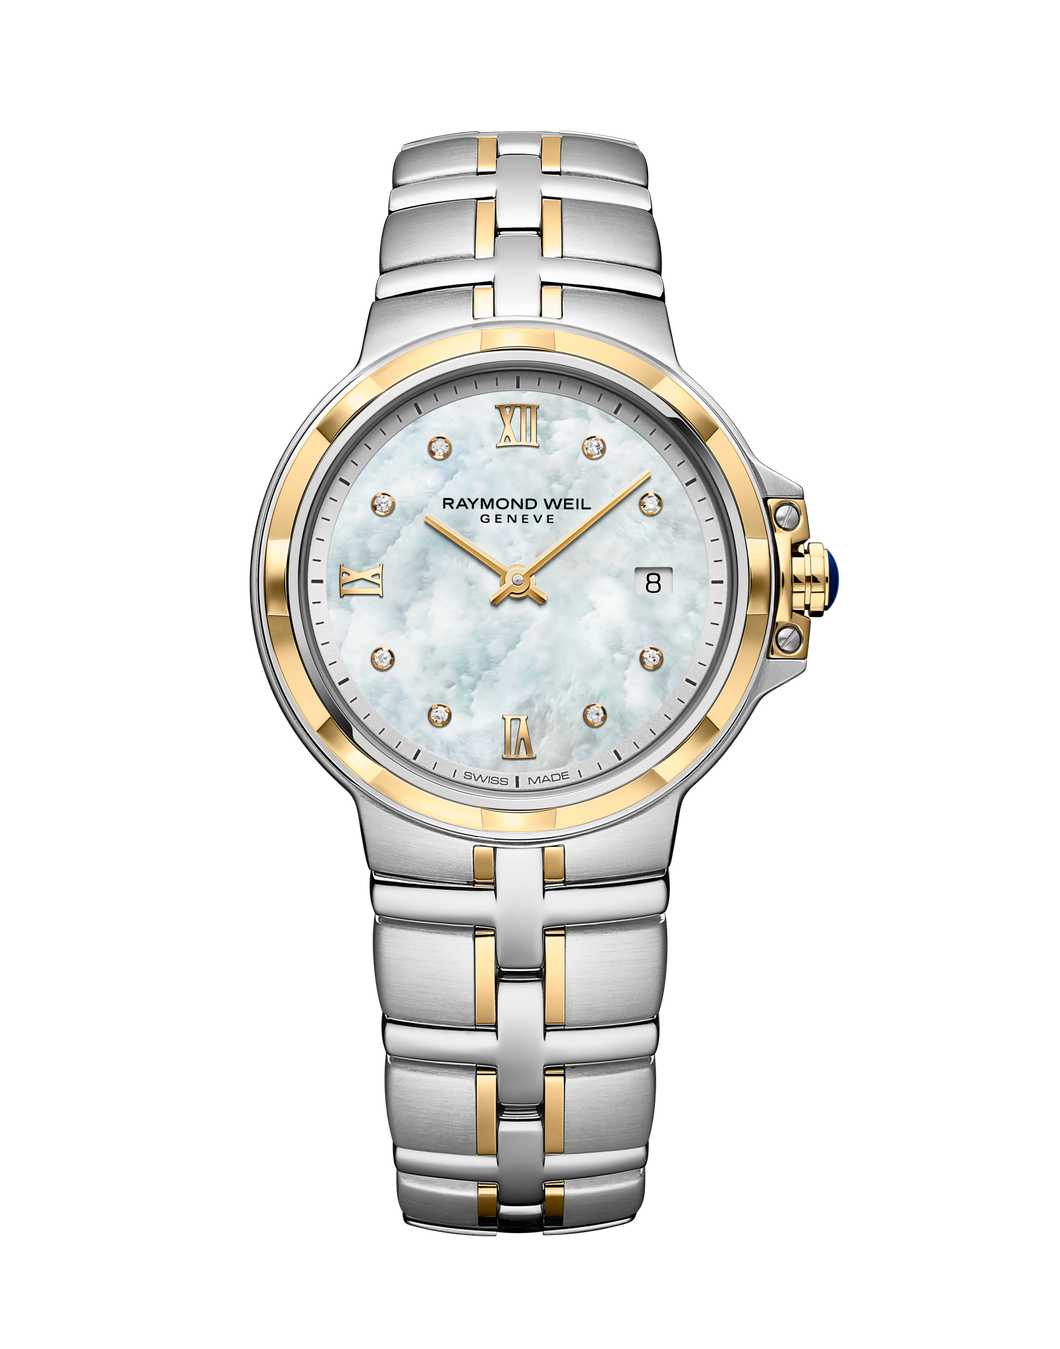 Raymond Weil Parsifal Two-Tone Diamond Dial Watch.